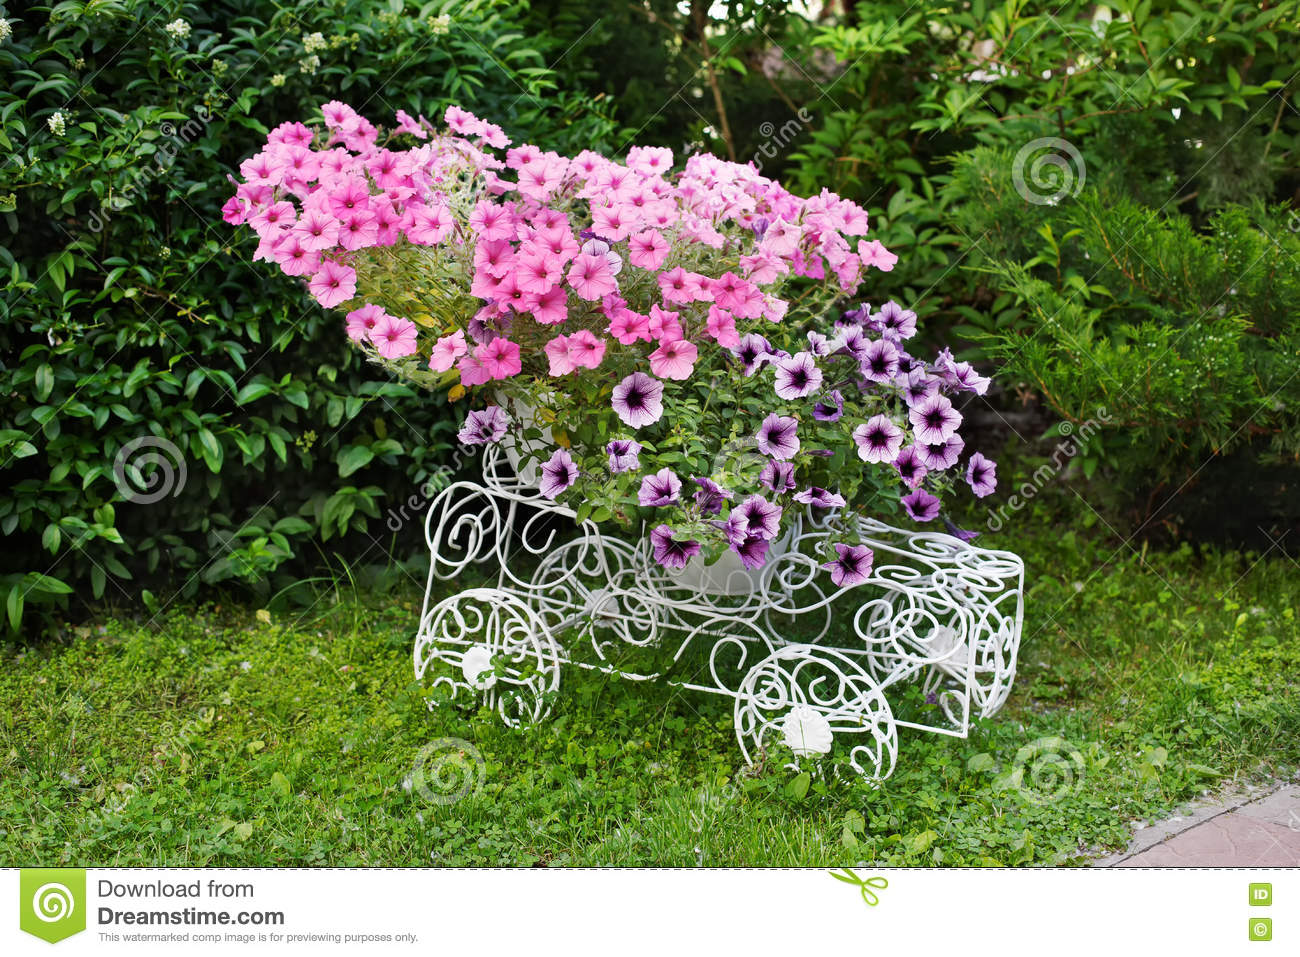 Flowerbed Cart With Bright Pink Flowers. Stock Photo - Image of ...